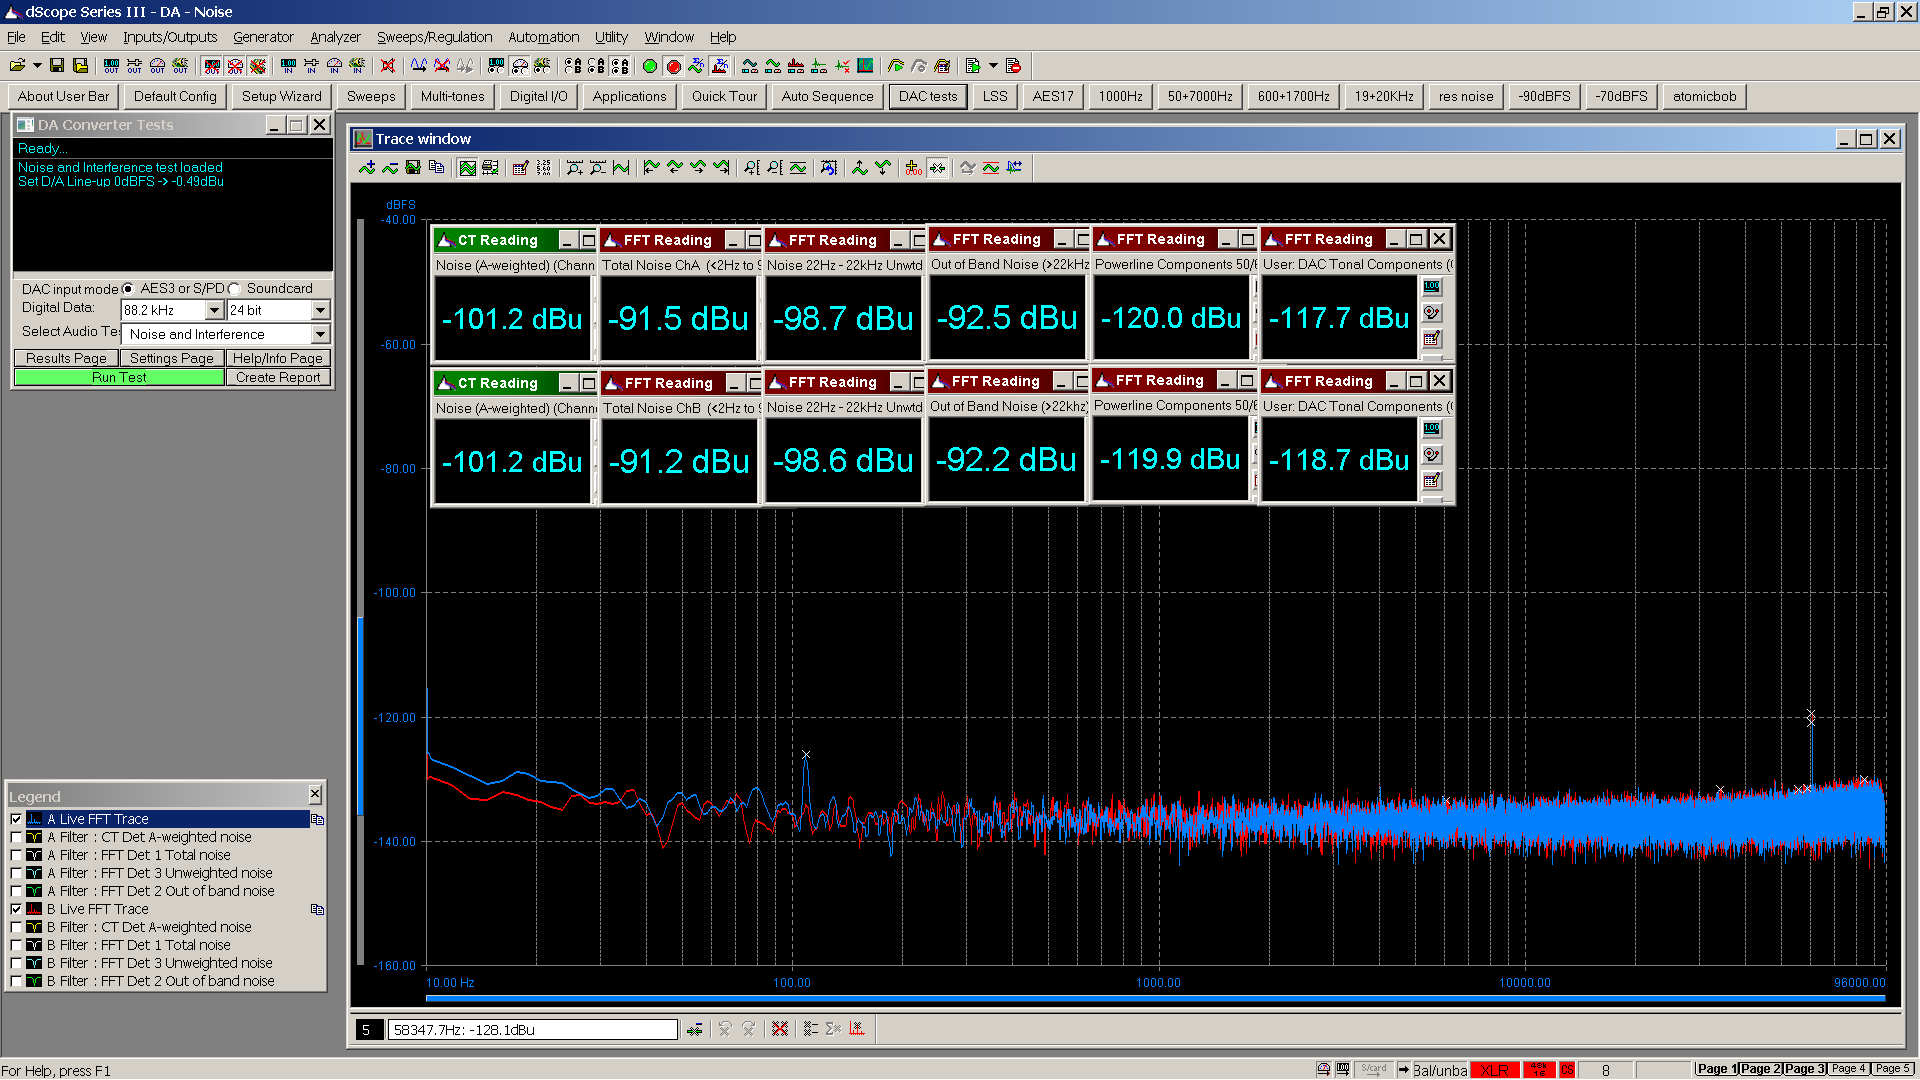 07 20190107-20 convert2 Bal noise and interference - AES -18dBFS ref 0 dBu out - int atten.PNG